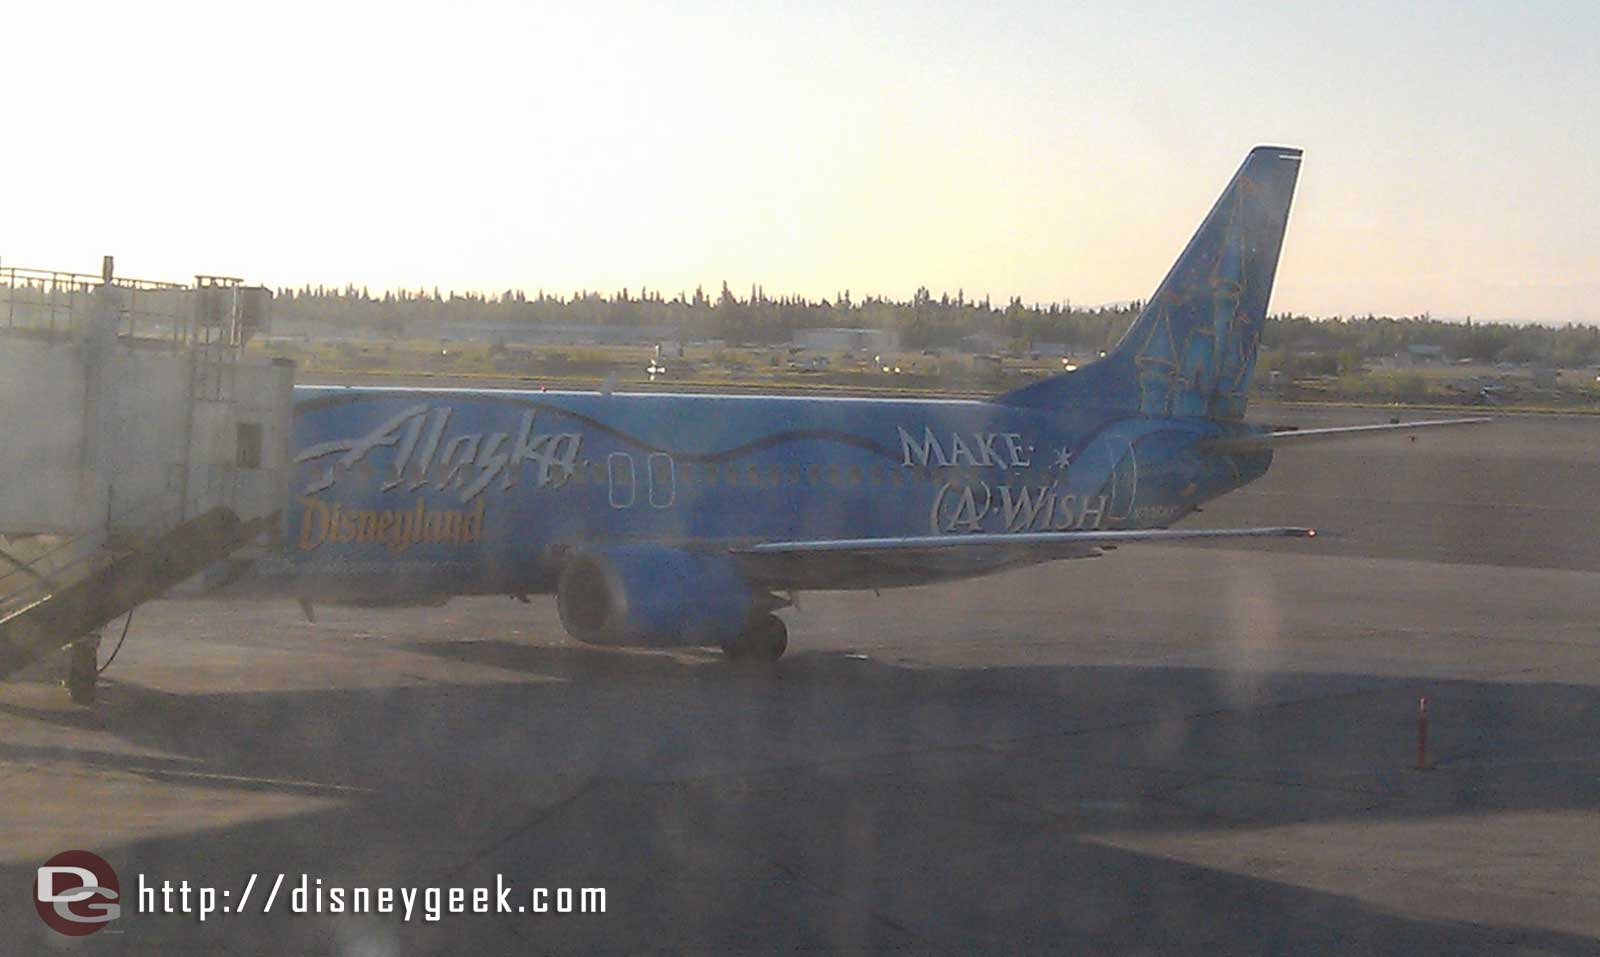 Heading home to LA this morning.  Our plane has a Disneyland / Make a Wish paint scheme.